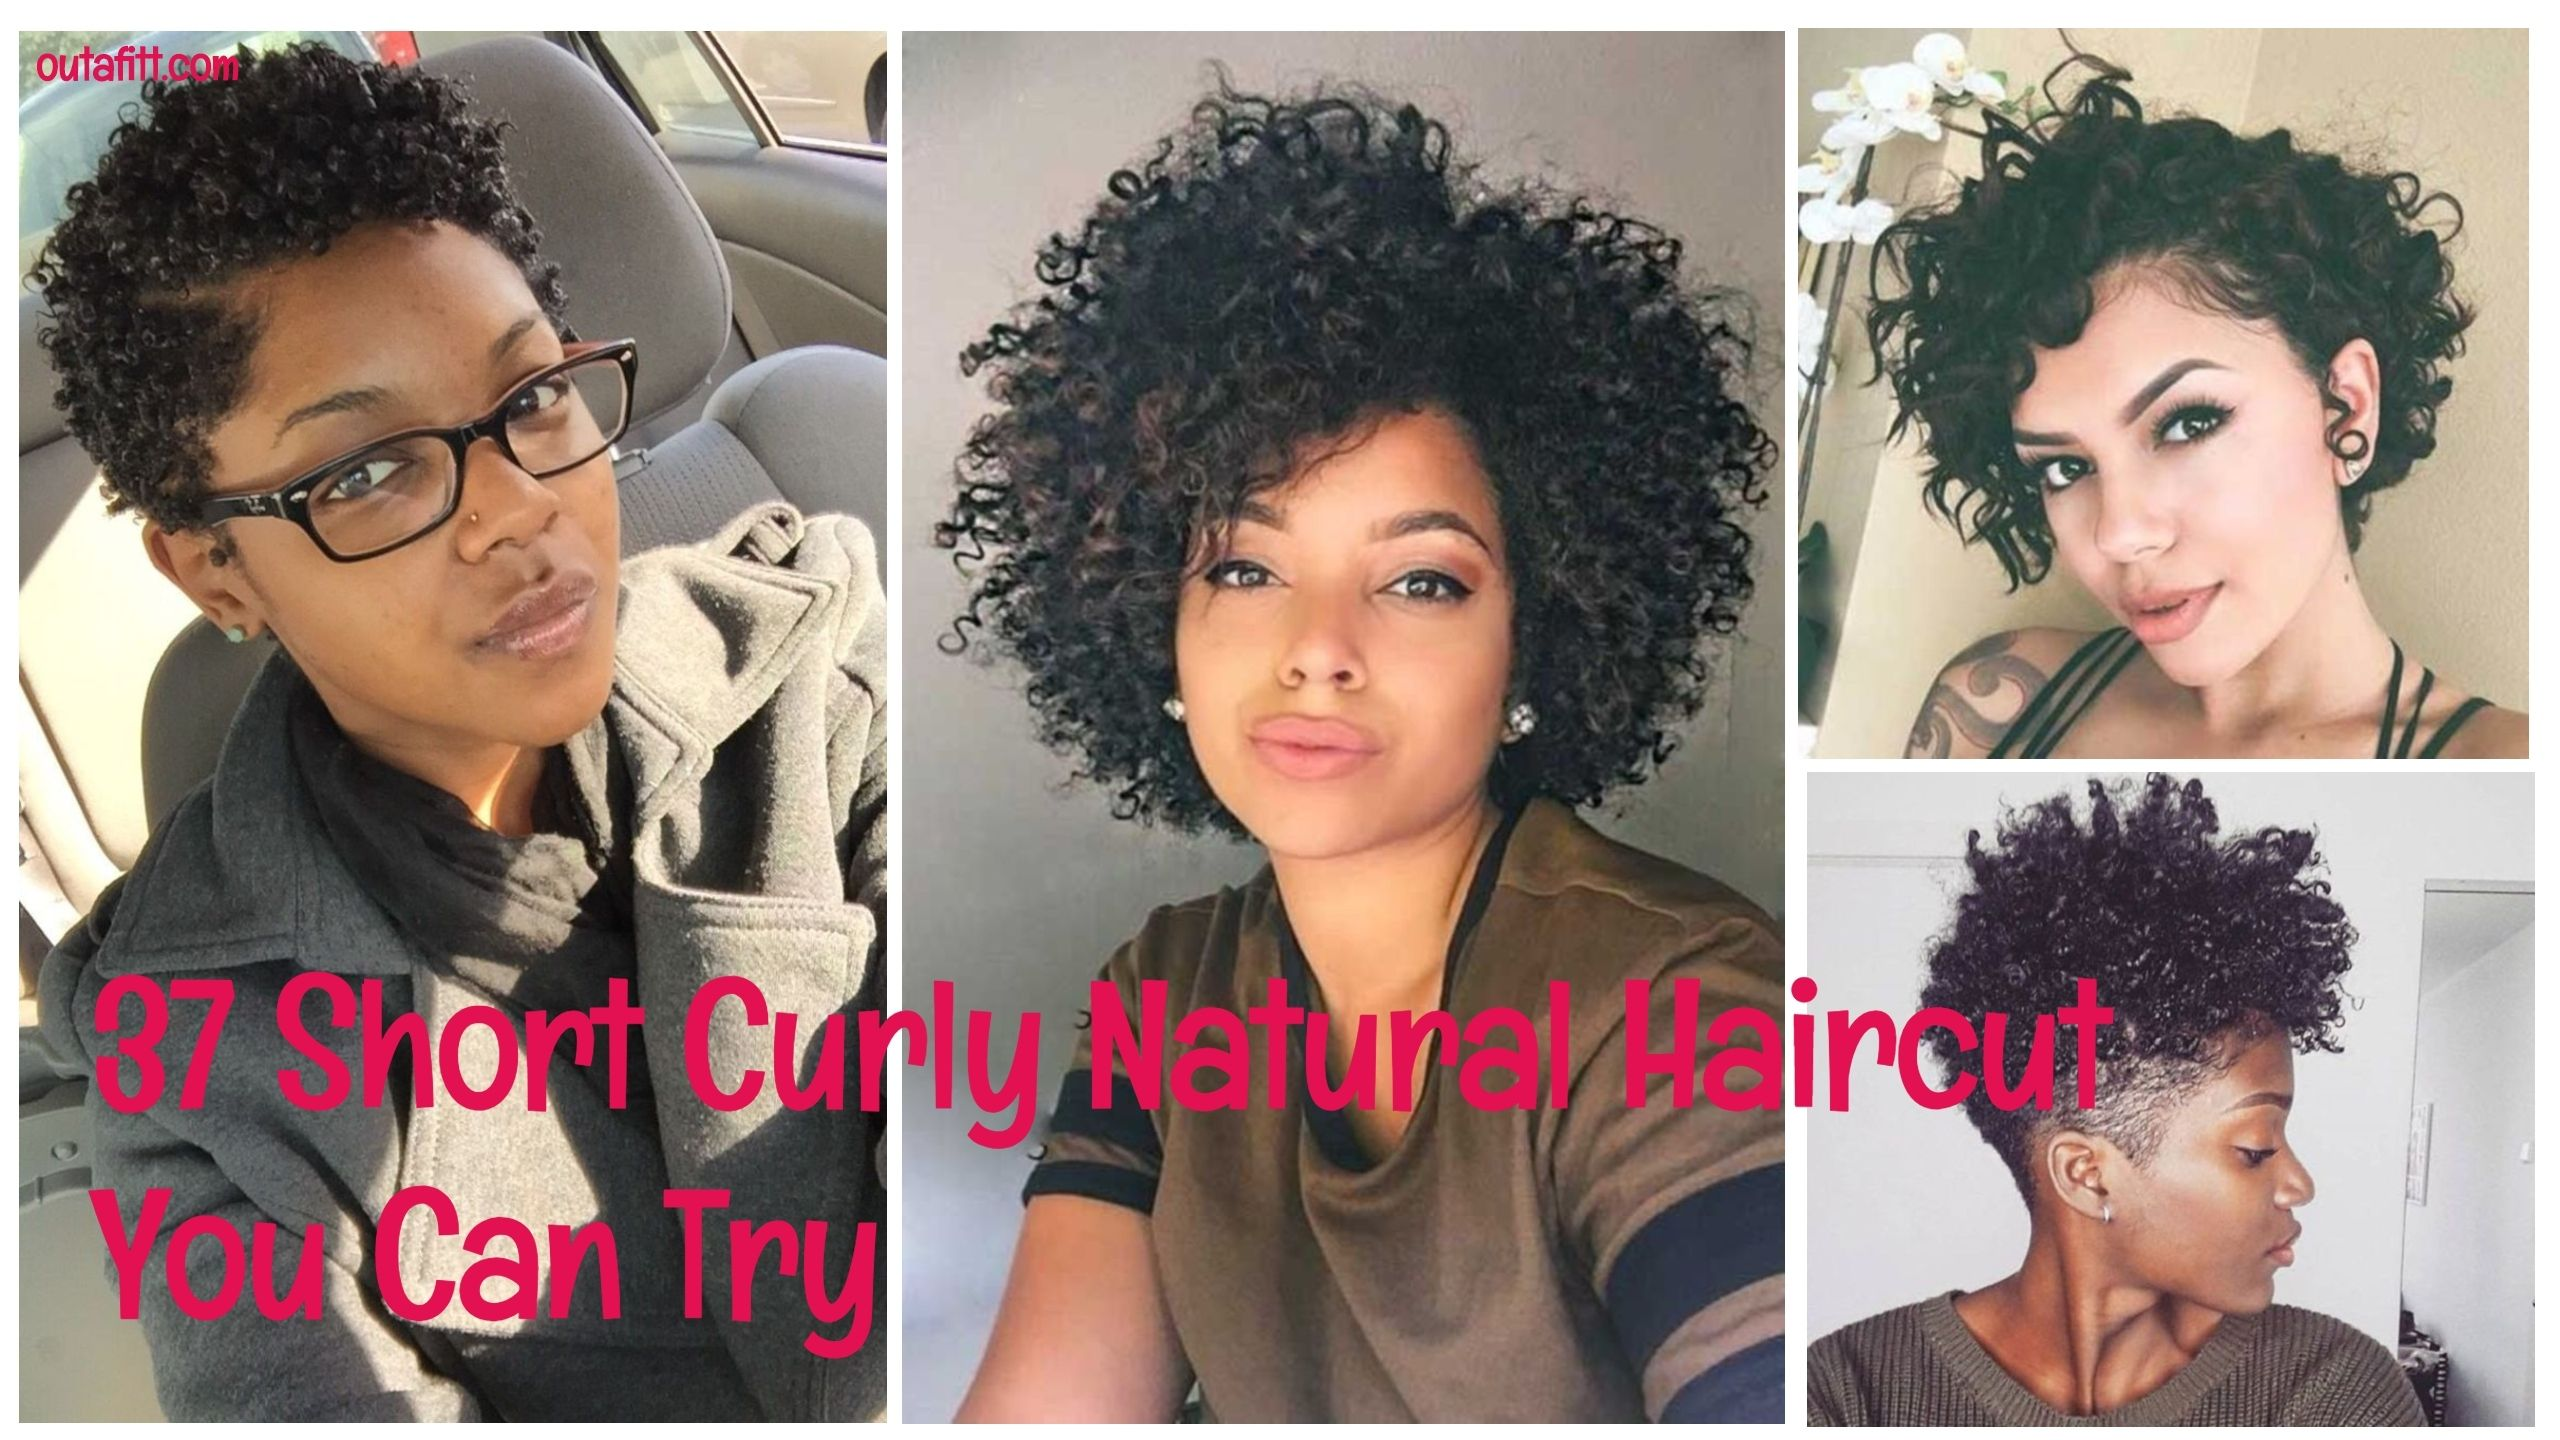 37 short curly natural haircut you can try   hairstyle